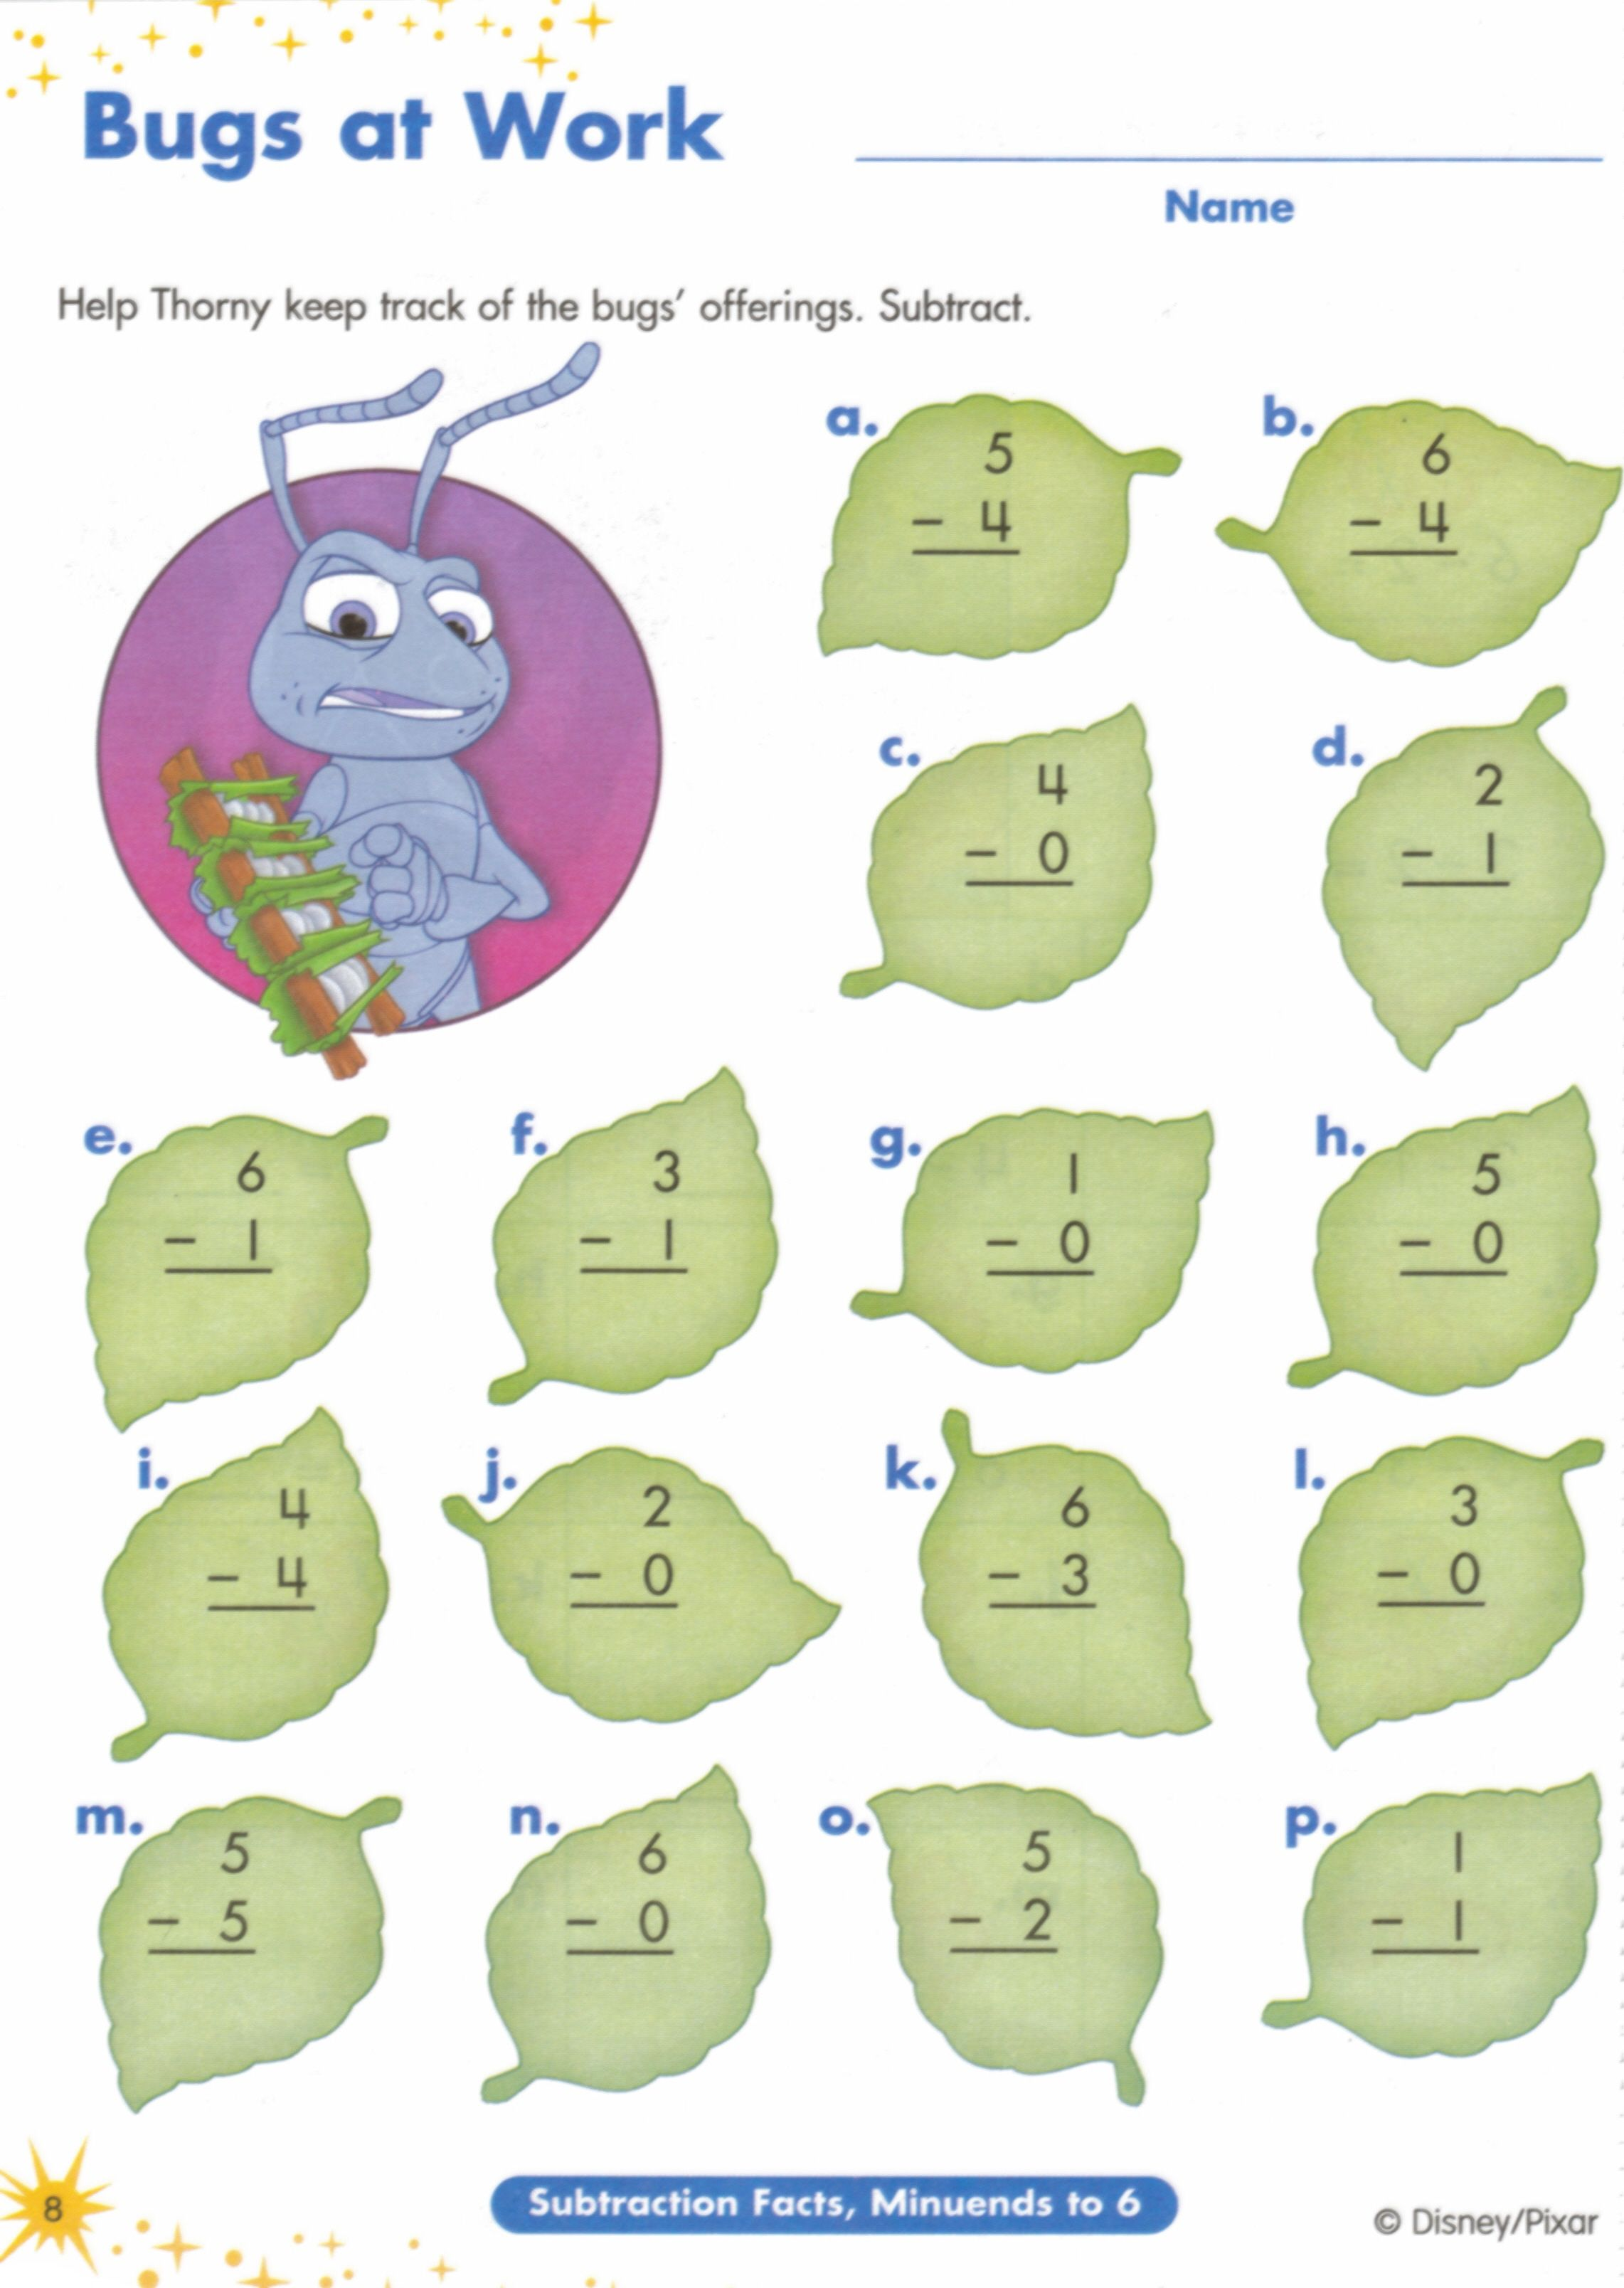 Weirdmailus  Pleasant  Images About Worksheets On Pinterest  Fun Facts For Kids  With Engaging  Images About Worksheets On Pinterest  Fun Facts For Kids Earth Day Worksheets And Jungles With Delightful Decimal To Fraction Worksheets Also Gustar Practice Worksheets In Addition Math For Second Graders Worksheets And Letter P Worksheets For Kindergarten As Well As Dividing By  Worksheets Additionally Basic Geometry Worksheets High School From Pinterestcom With Weirdmailus  Engaging  Images About Worksheets On Pinterest  Fun Facts For Kids  With Delightful  Images About Worksheets On Pinterest  Fun Facts For Kids Earth Day Worksheets And Jungles And Pleasant Decimal To Fraction Worksheets Also Gustar Practice Worksheets In Addition Math For Second Graders Worksheets From Pinterestcom